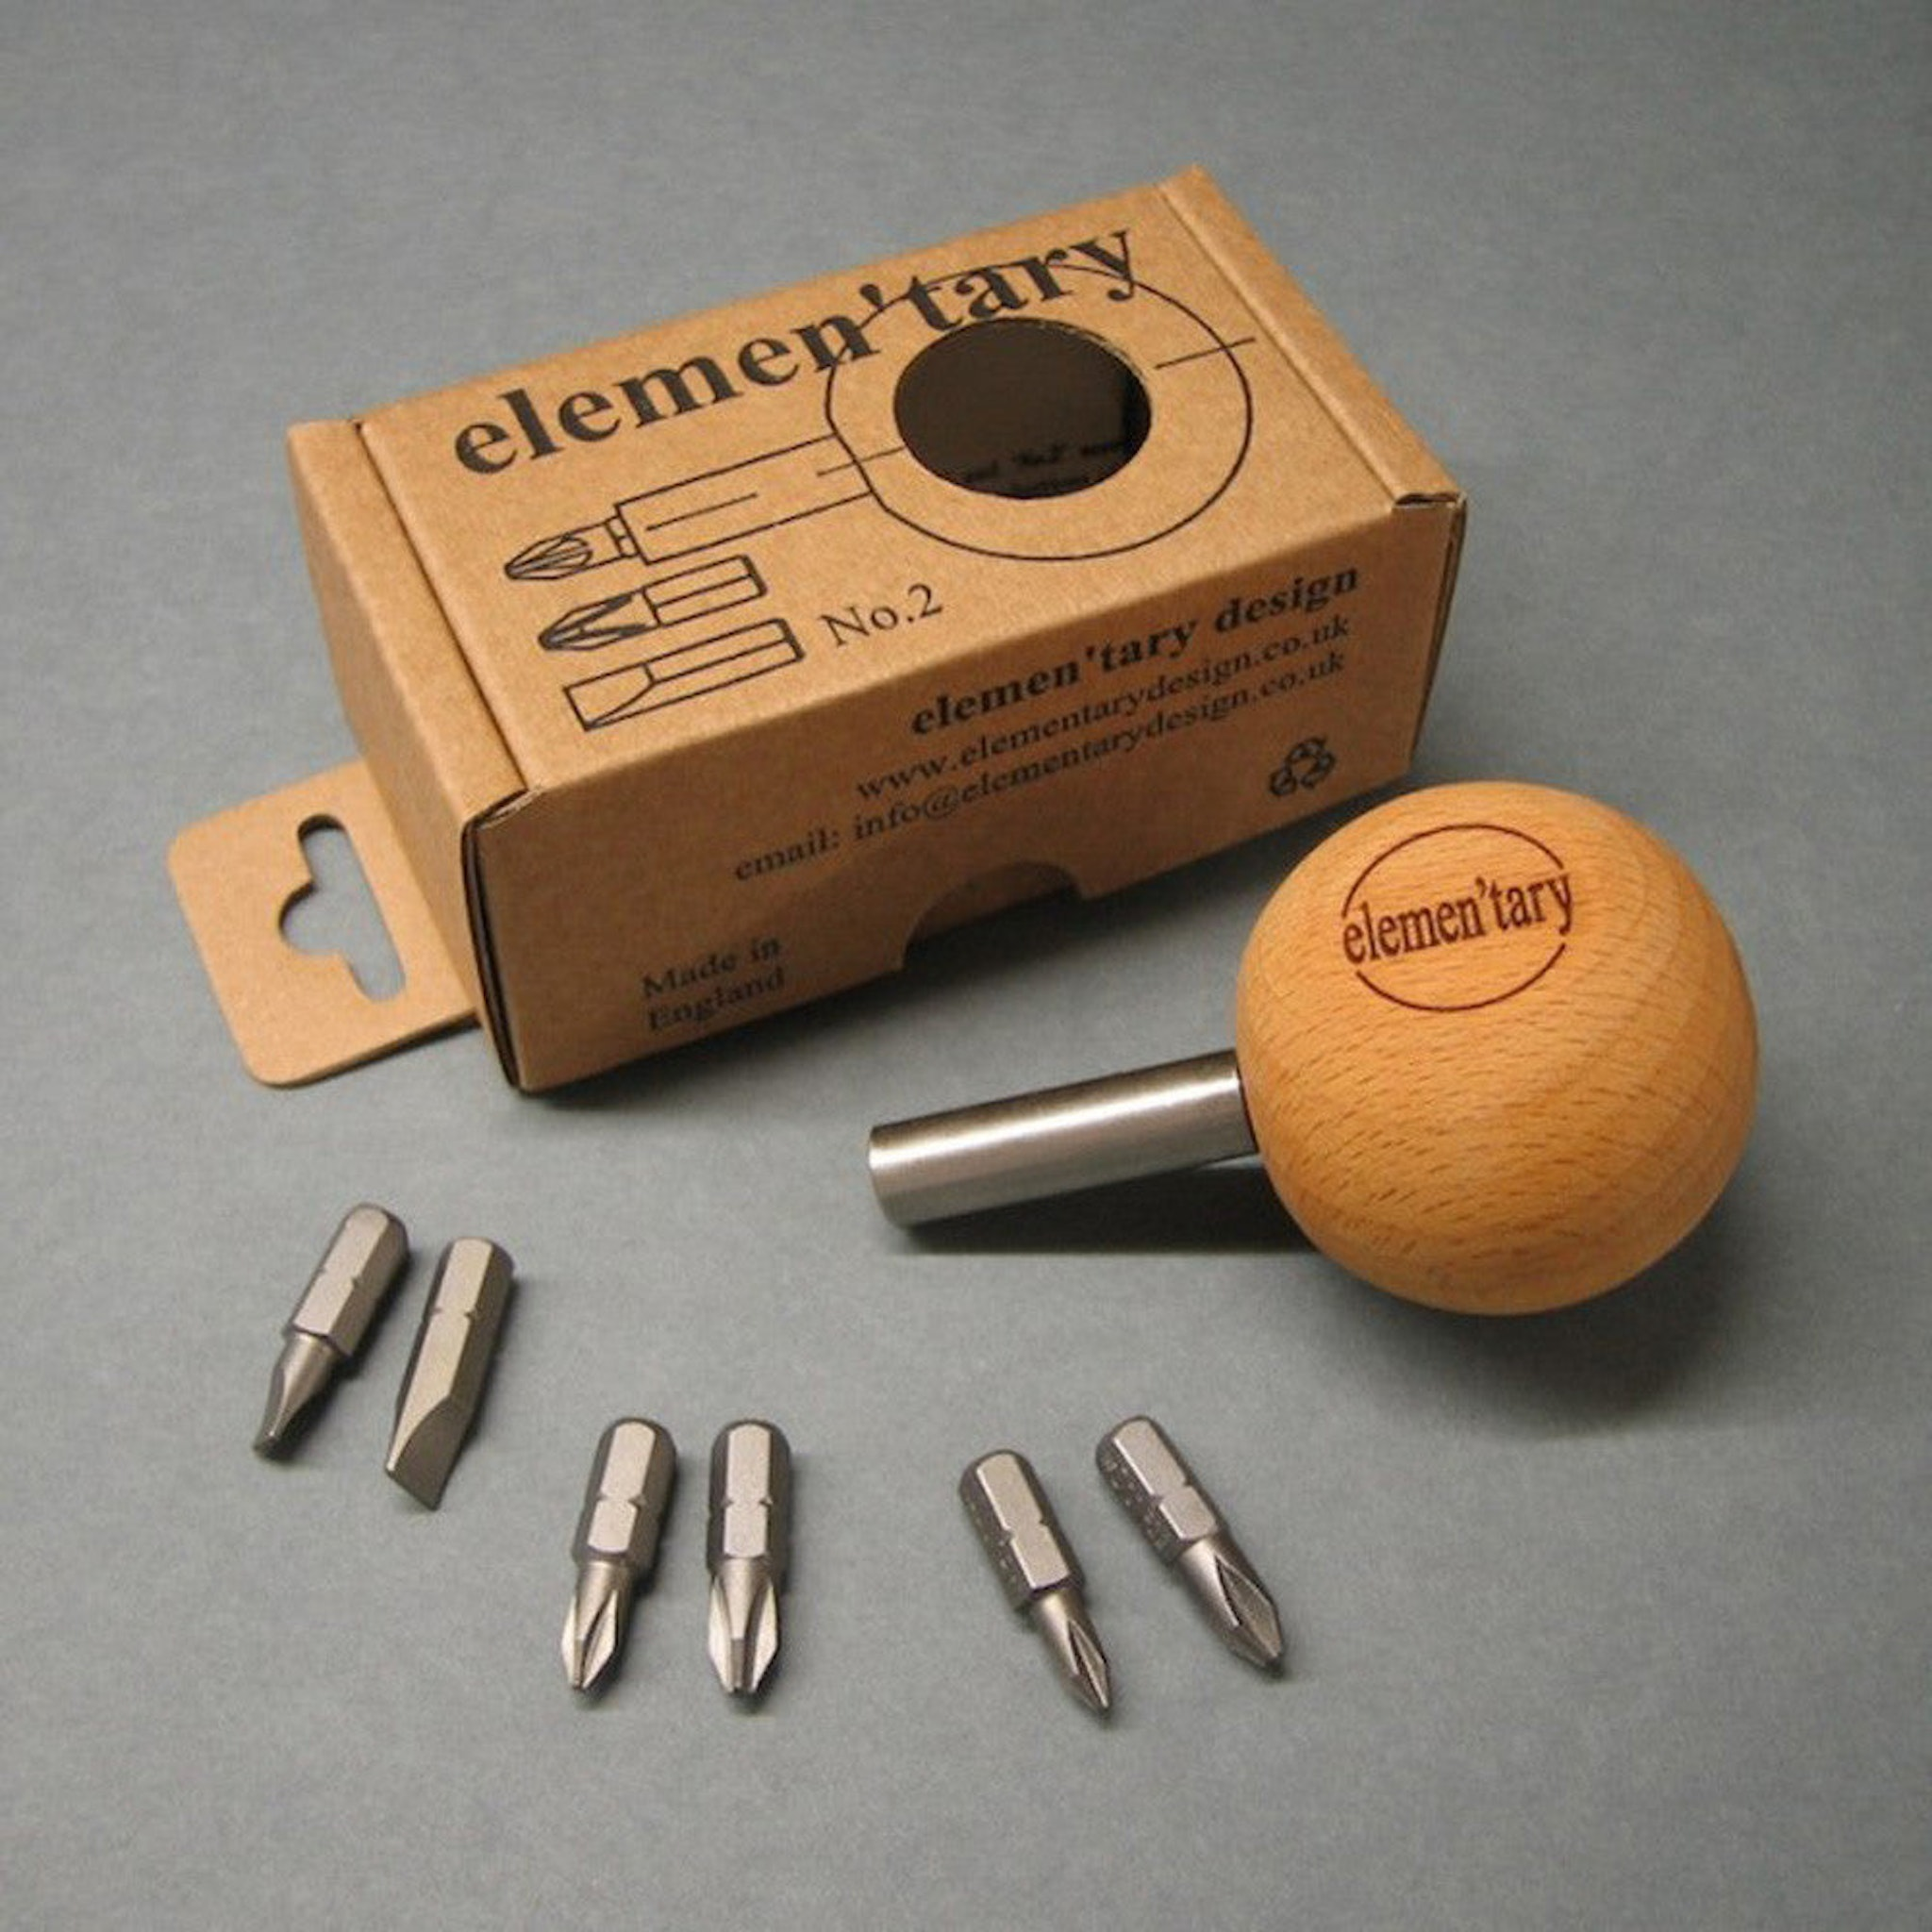 Elementary No. 2 Screwdriver